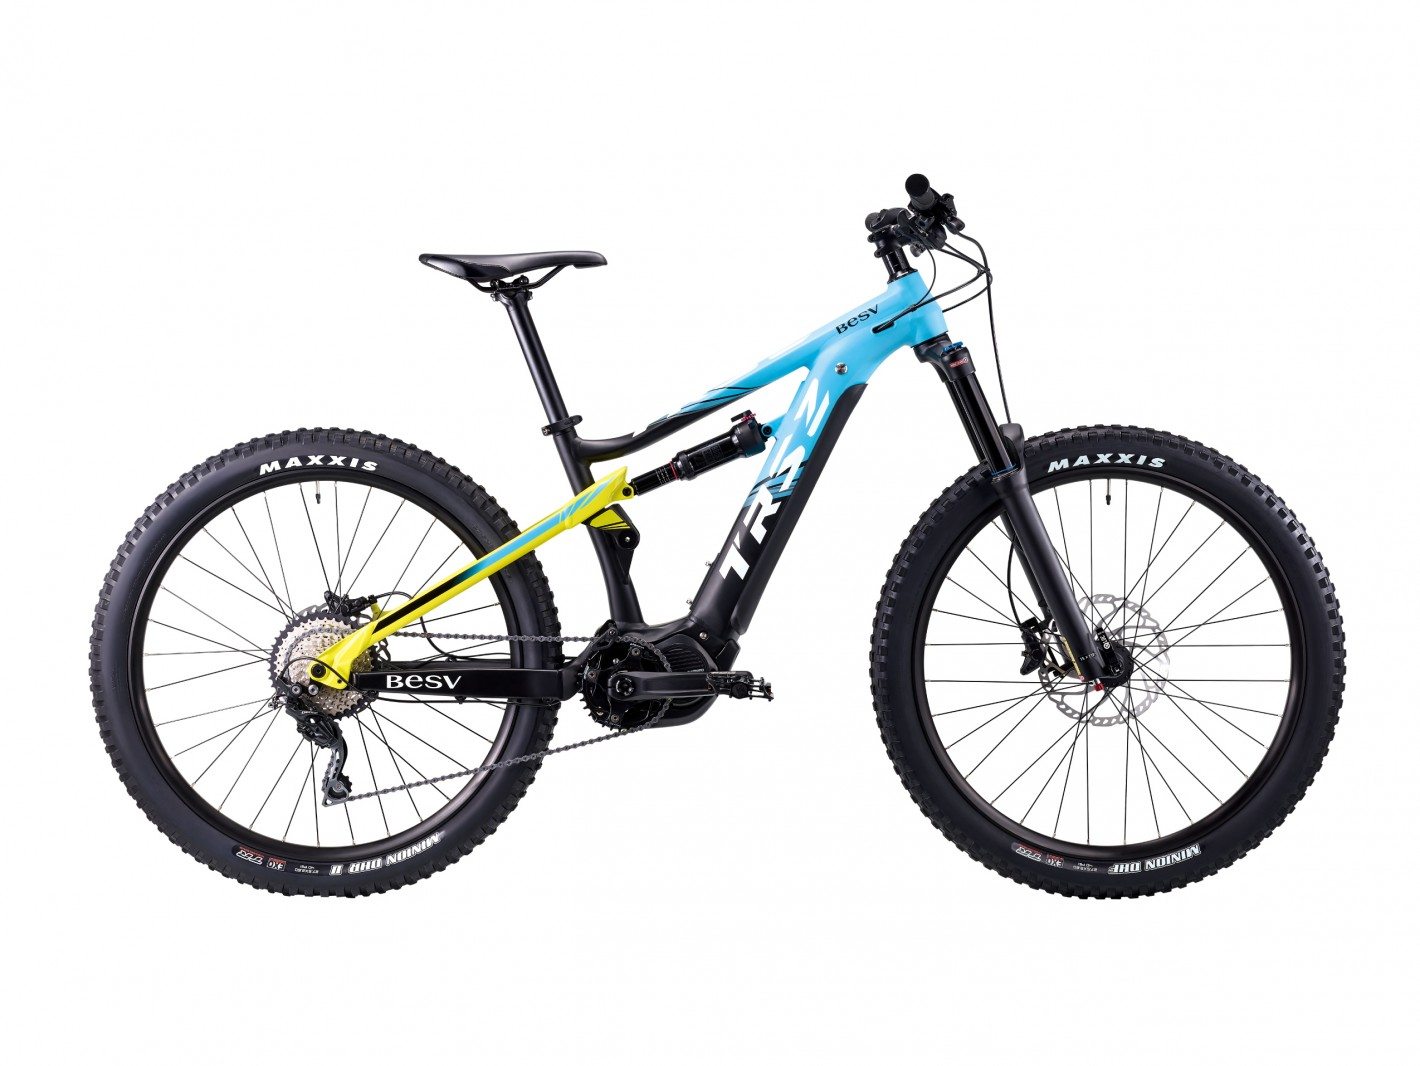 Picture 3: The TRS2 smart mobile mountain bike, made by BESV, won the 2020 Taiwan Excellence Award.